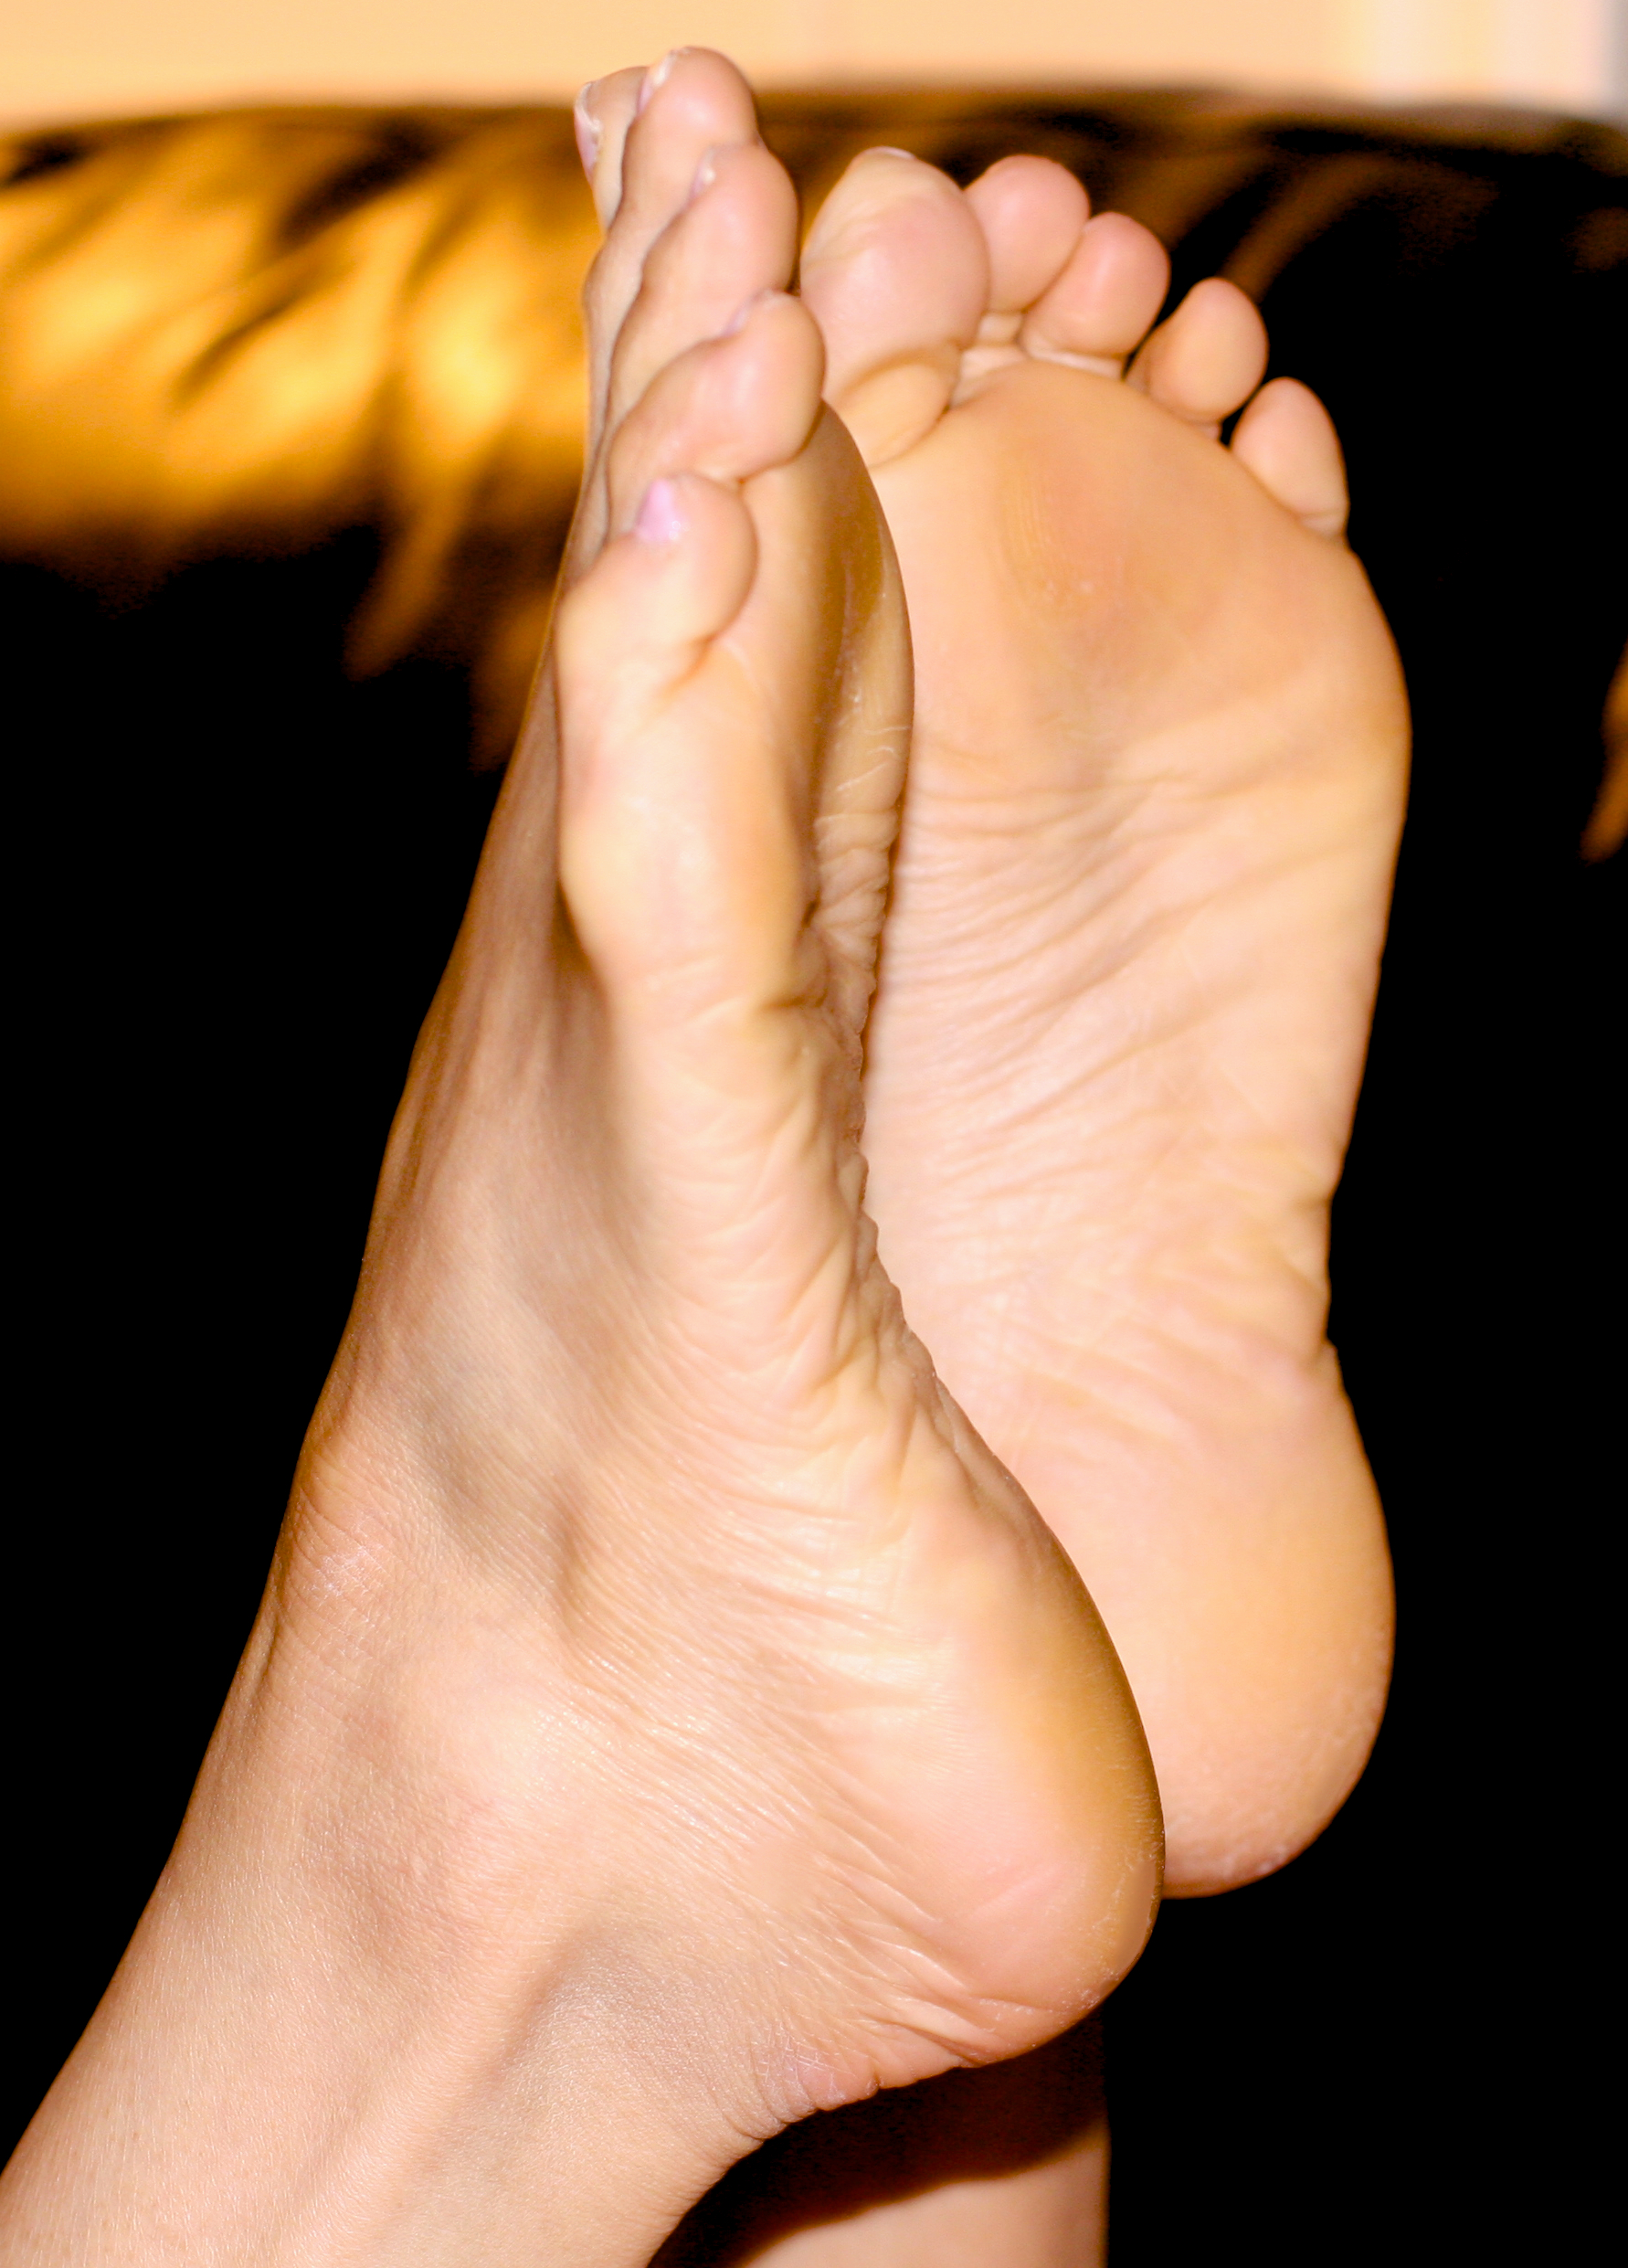 file:sexy barefeet5 - wikimedia commons